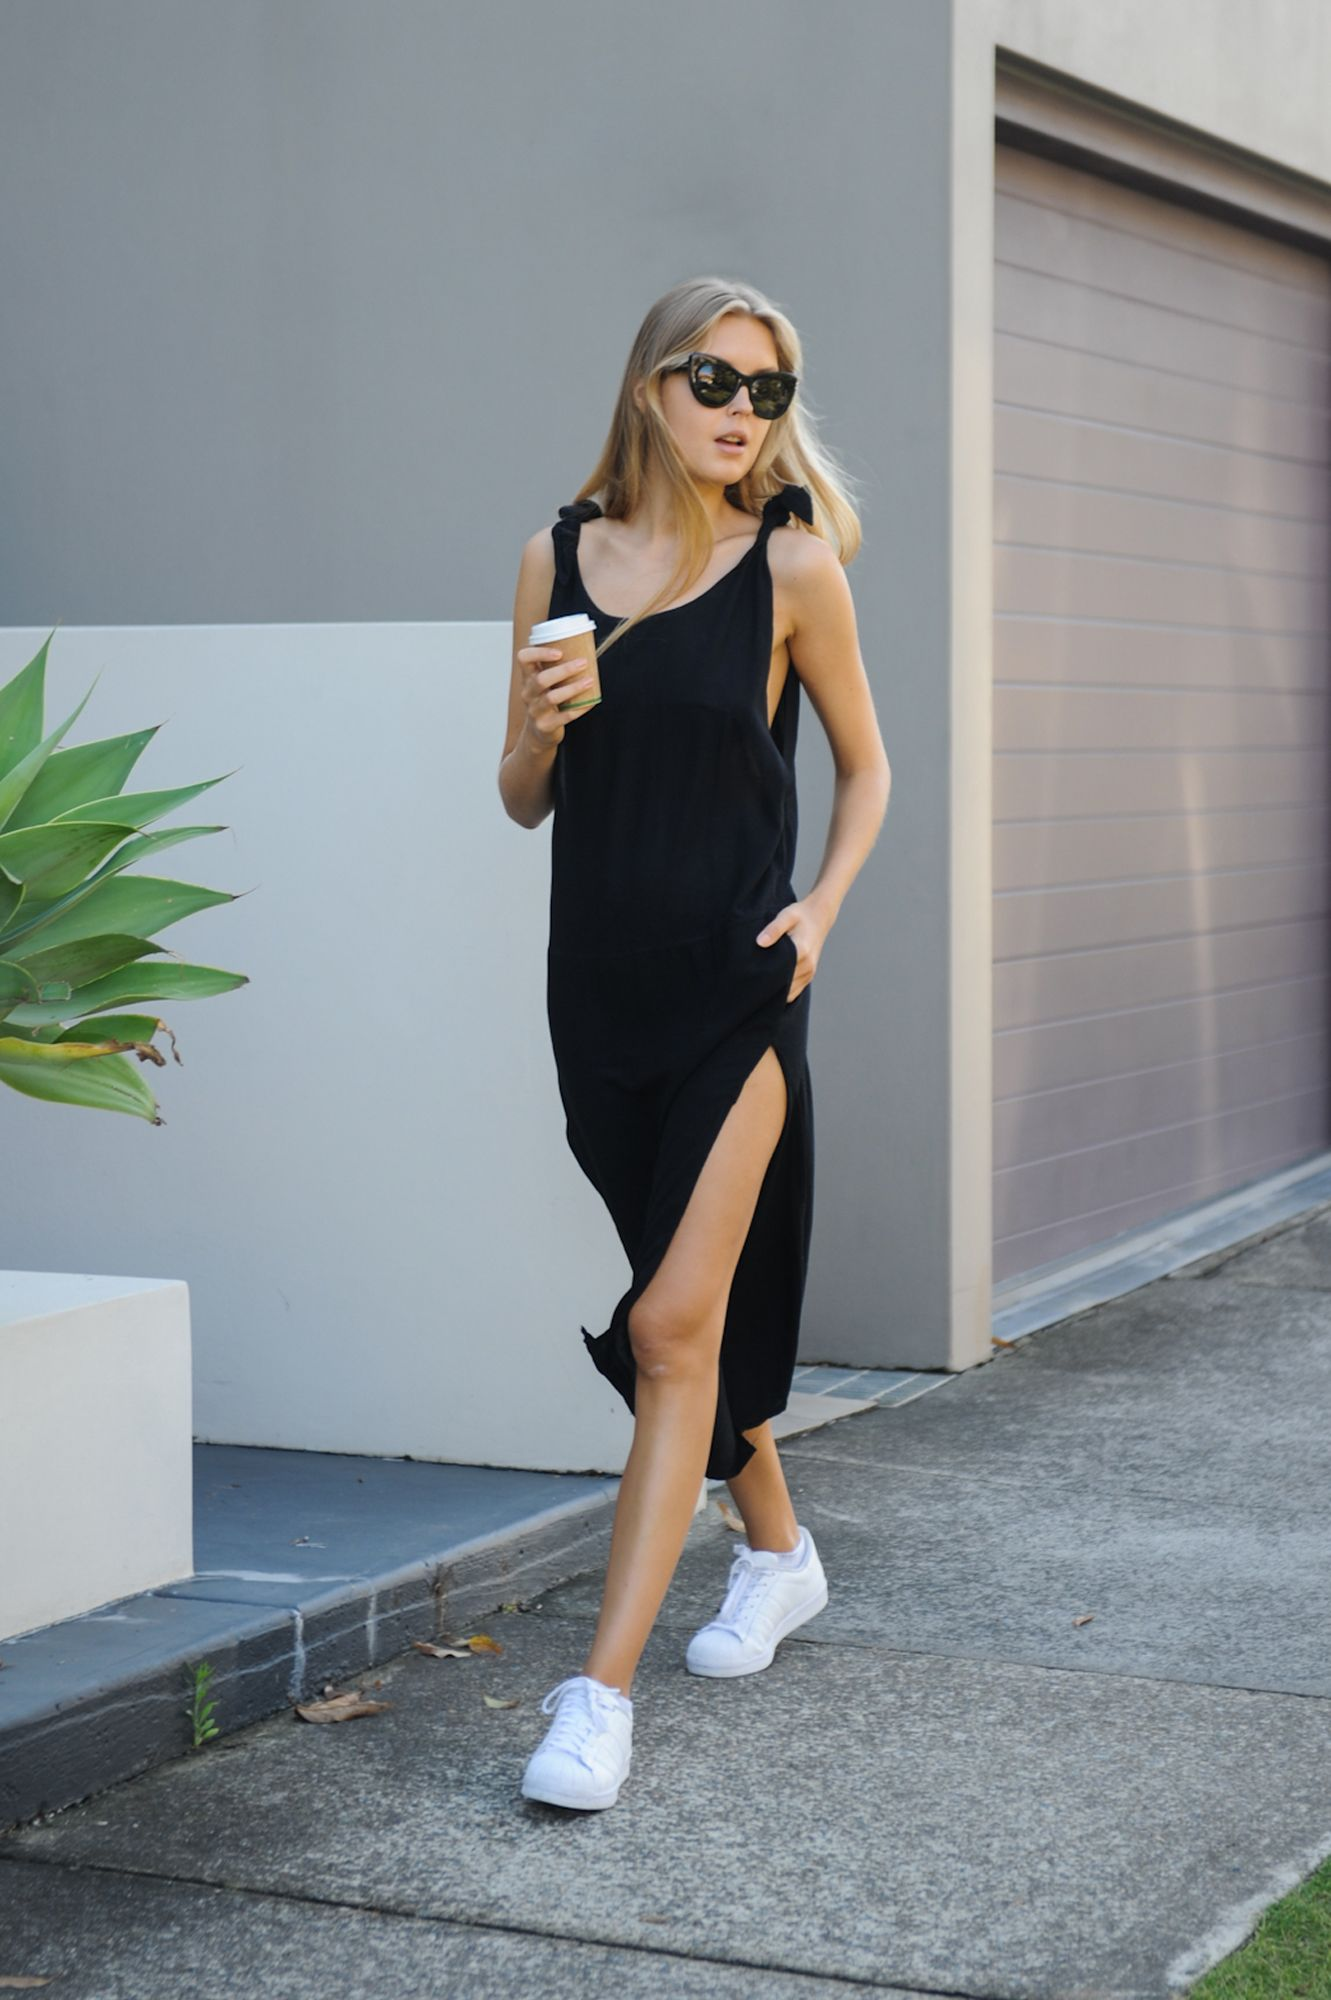 Black dress with adidas shoes - Source